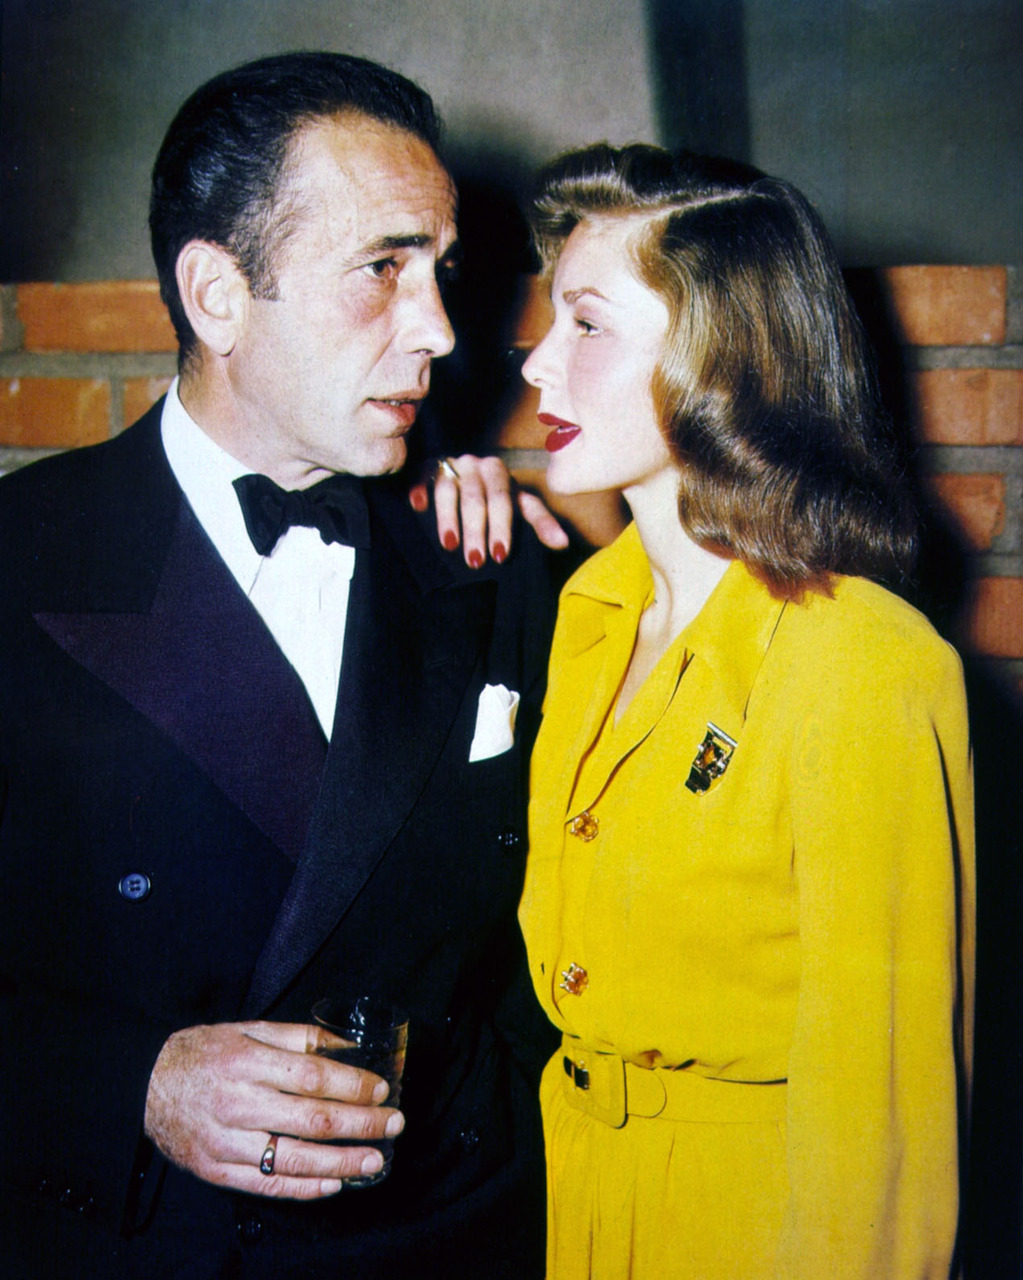 Lauren baccall photo 197 of 267 pics wallpaper photo for Lauren bacall married to humphrey bogart